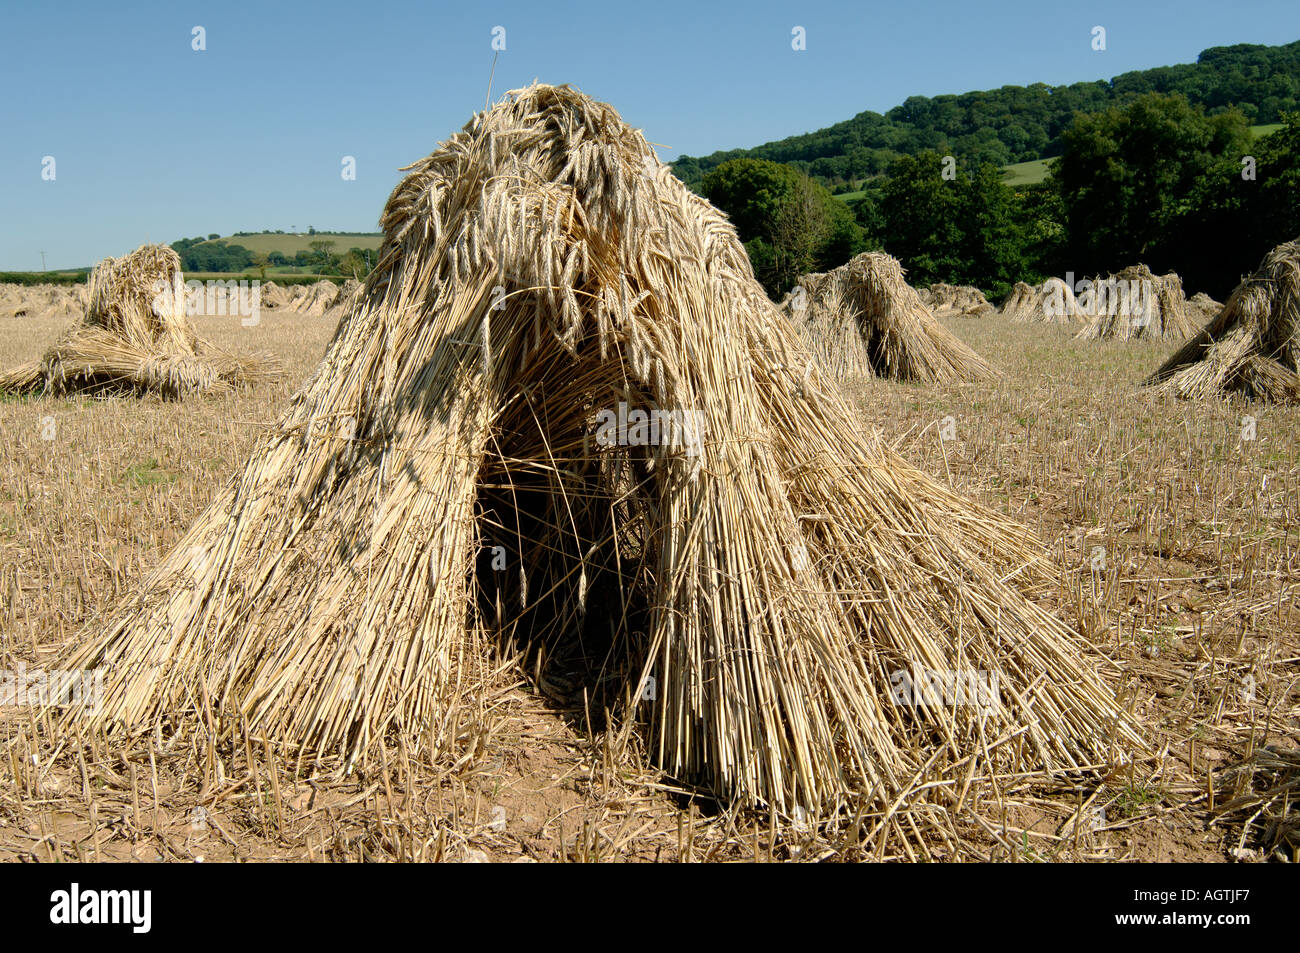 Close up of stooks of cut wheat in the field with long straw for thatching - Stock Image